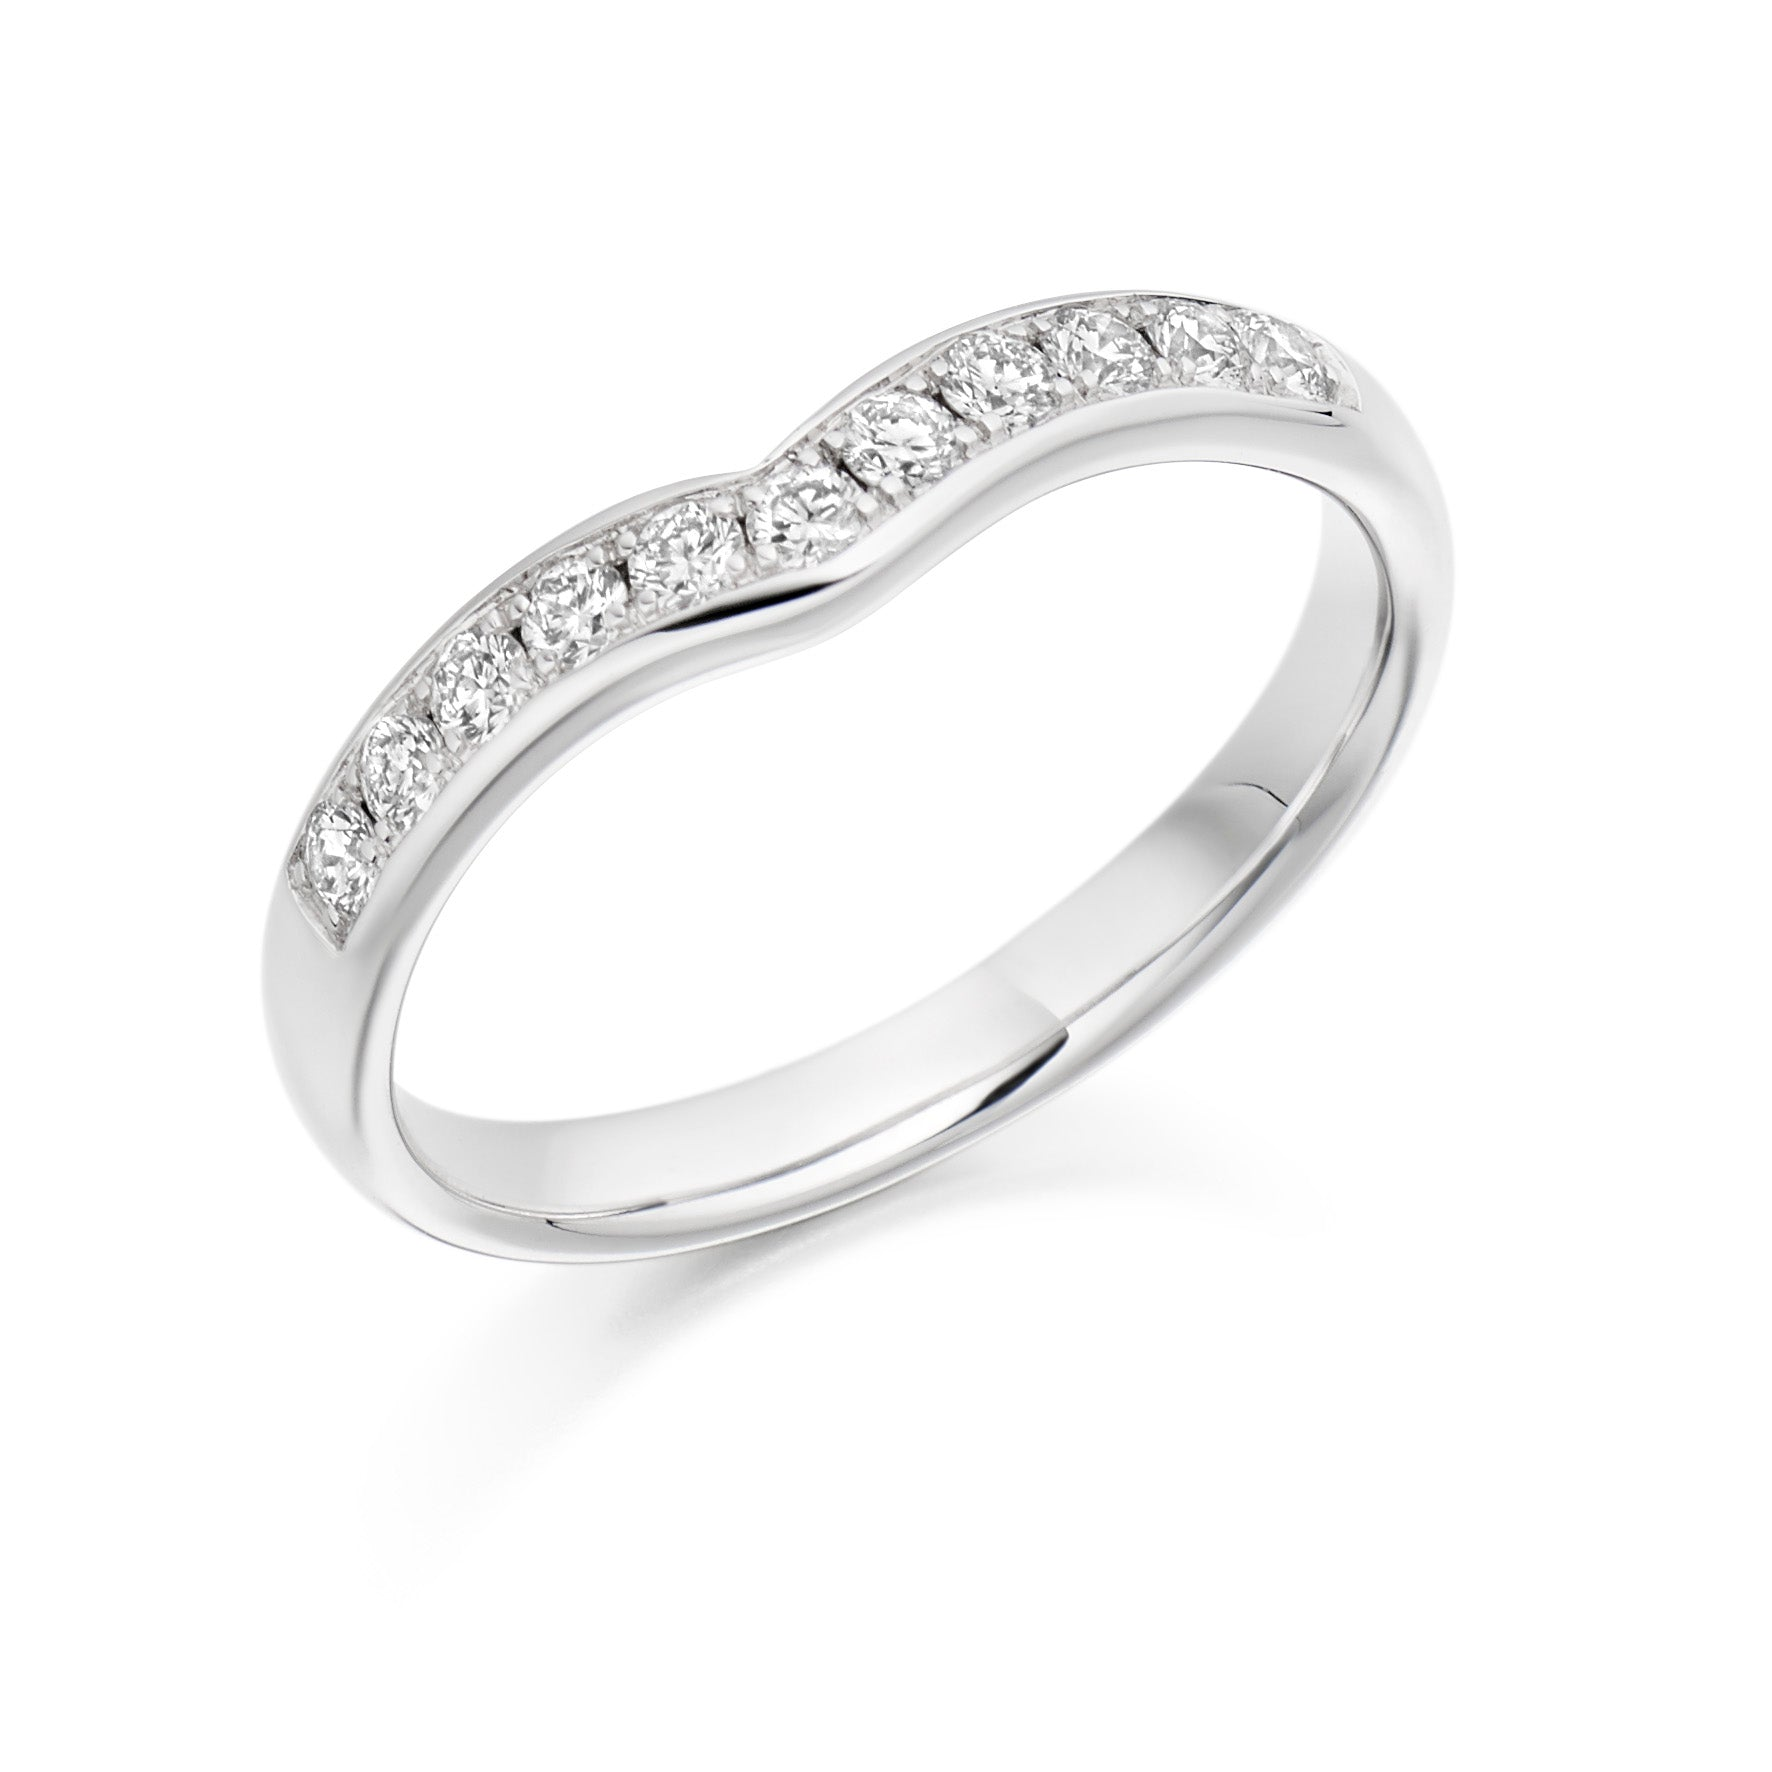 0.30ct Round Brilliant Cut Diamonds Curve Shaped- Wedding Ring - (Home Try-On)